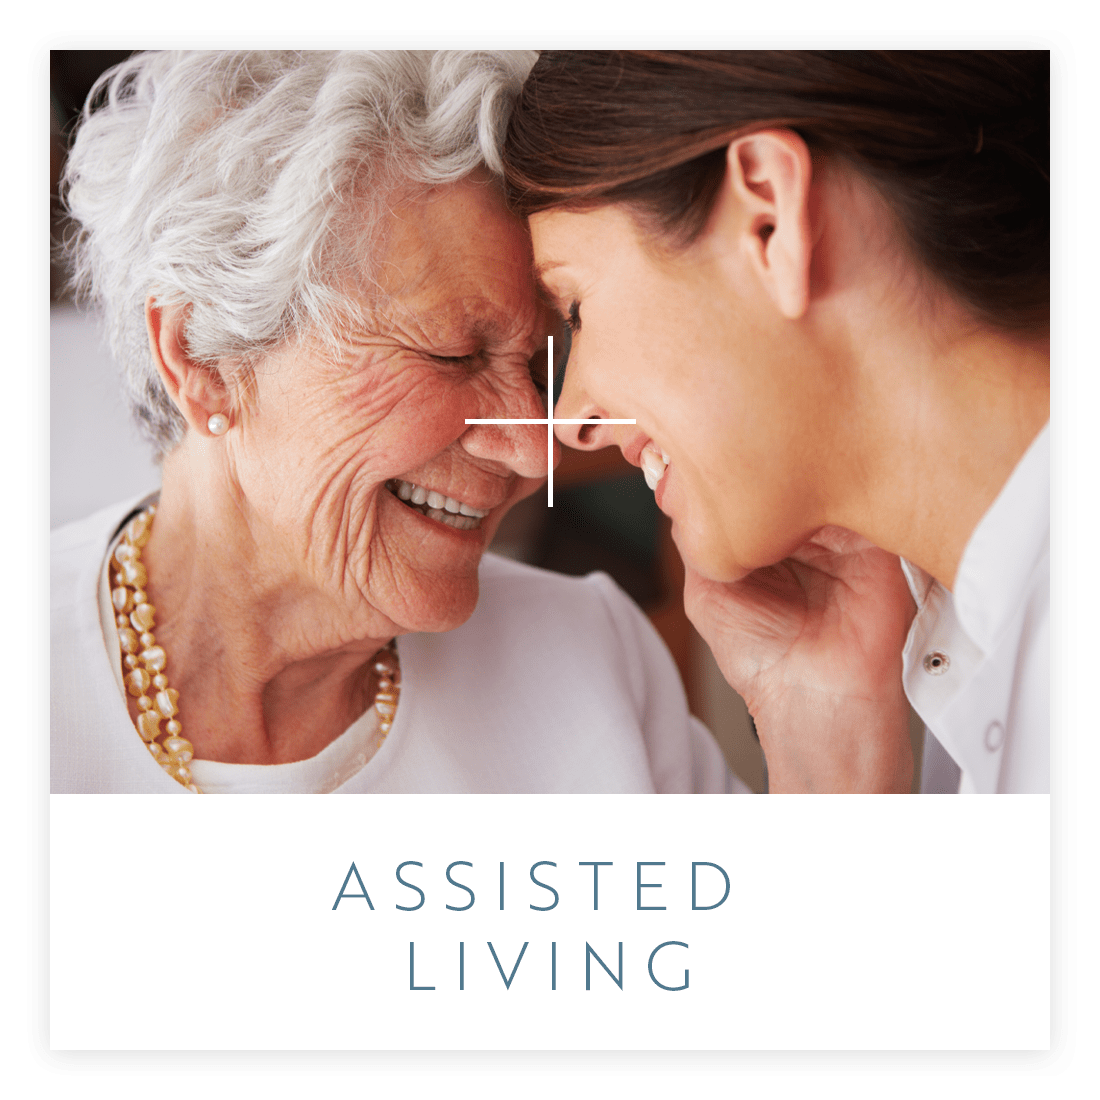 View our Assisted Living services at The Meridian at Waterways in Fort Lauderdale, Florida